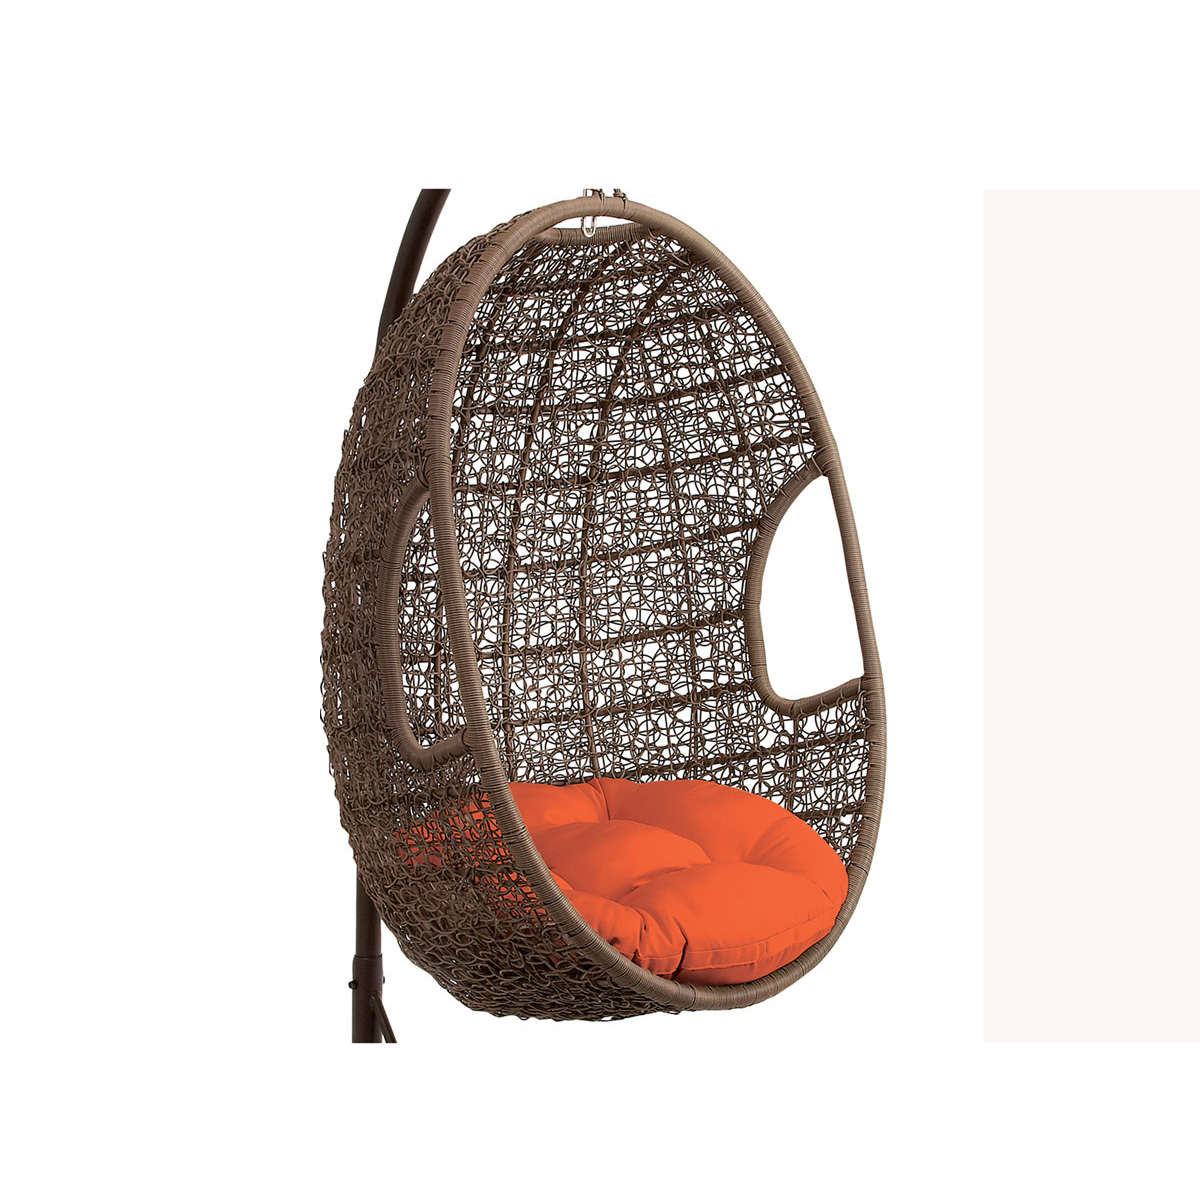 Rattan Egg Chairs Hanover Outdoor Wicker Rattan Hanging Egg Chair Swing With